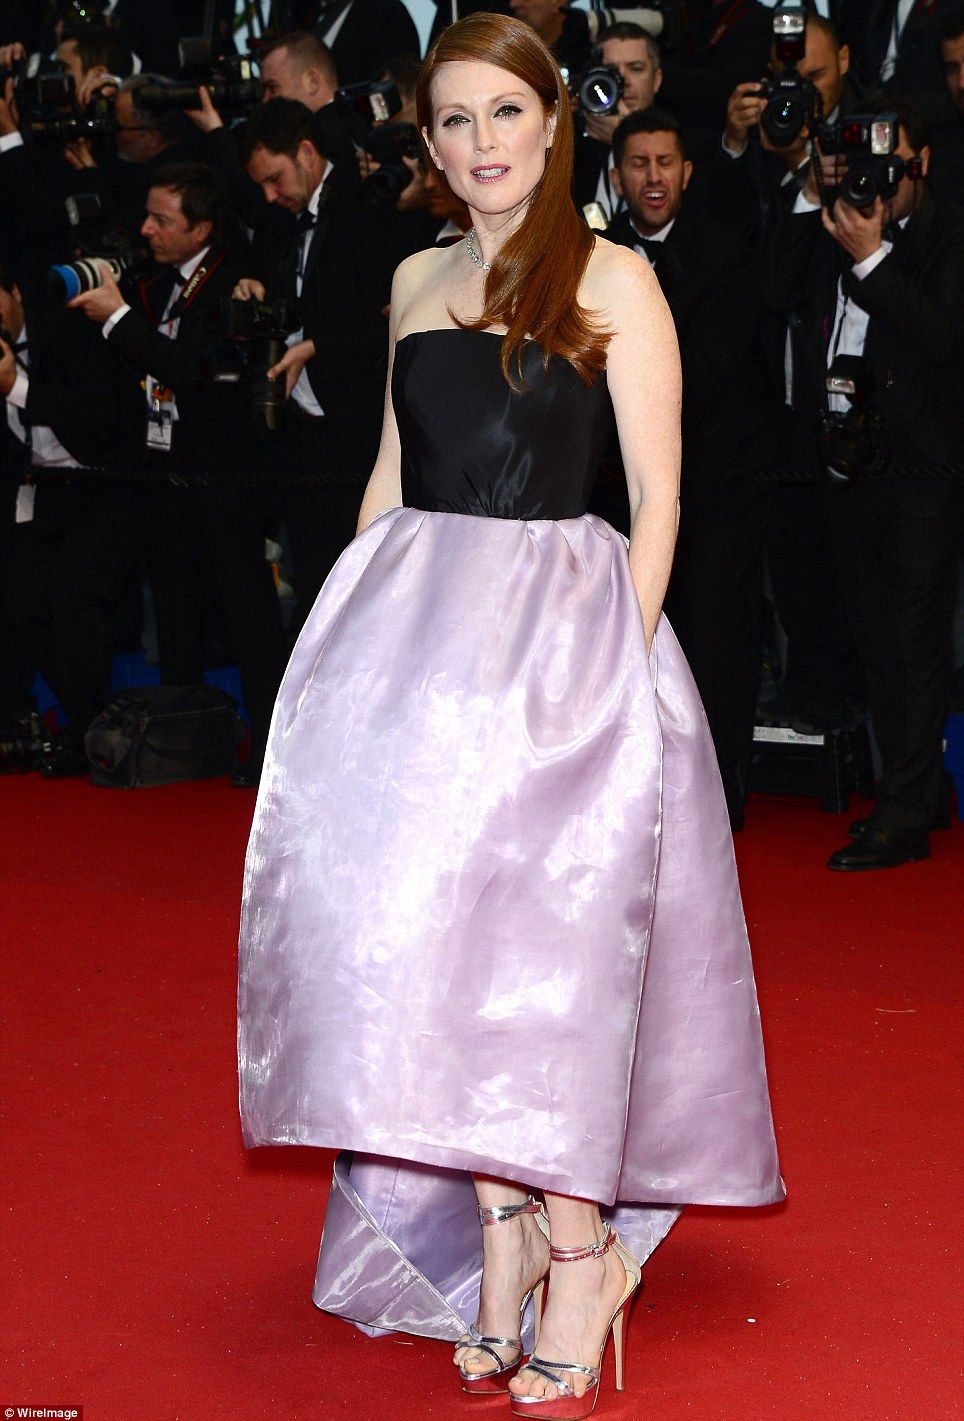 Julianne moore opted for a larger gown in a lilac coloured satin